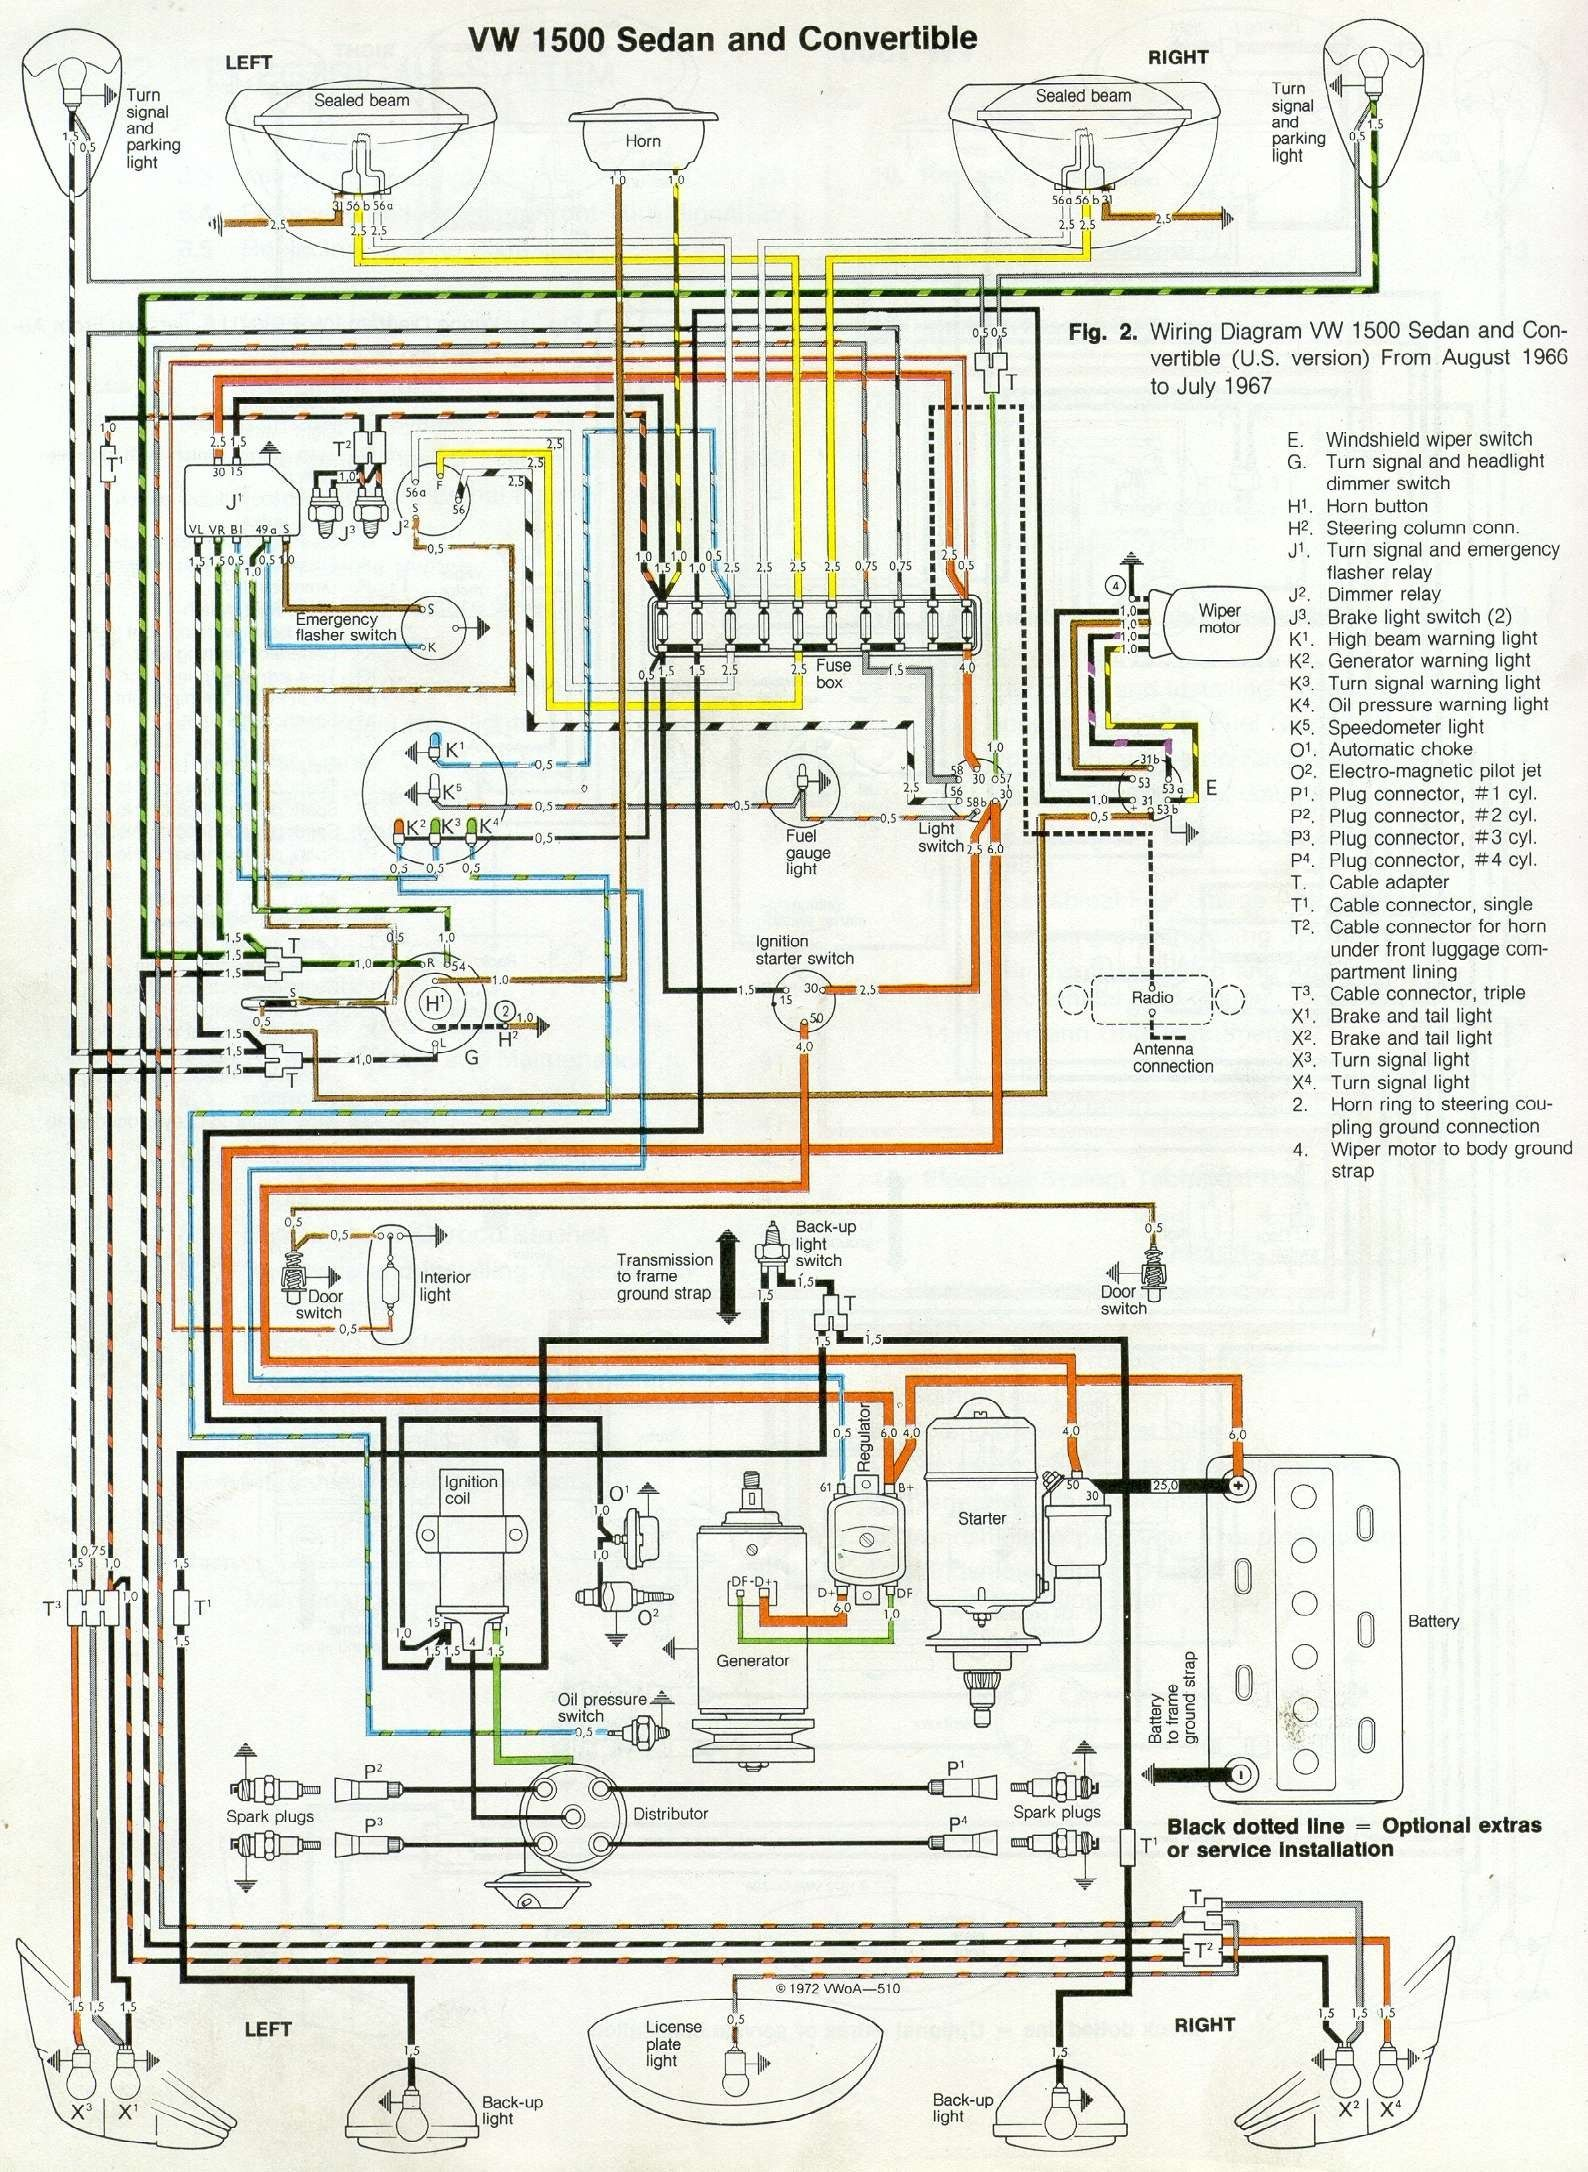 18EFB Alternator Wiring Diagram Vw Beetle | Digital Resources on volkswagen fuse diagram, volkswagen relay diagram, volkswagen chassis, volkswagen engine diagram, volkswagen clutch diagram, volkswagen fuse chart, volkswagen air conditioning, volkswagen charging system diagram, volkswagen transaxle diagram, volkswagen ignition diagram, volkswagen fuel diagram, volkswagen brakes diagram, volkswagen firing order, volkswagen torque specs, volkswagen oil diagram, volkswagen key diagram, volkswagen vacuum diagram, volkswagen electrical system, volkswagen r400,